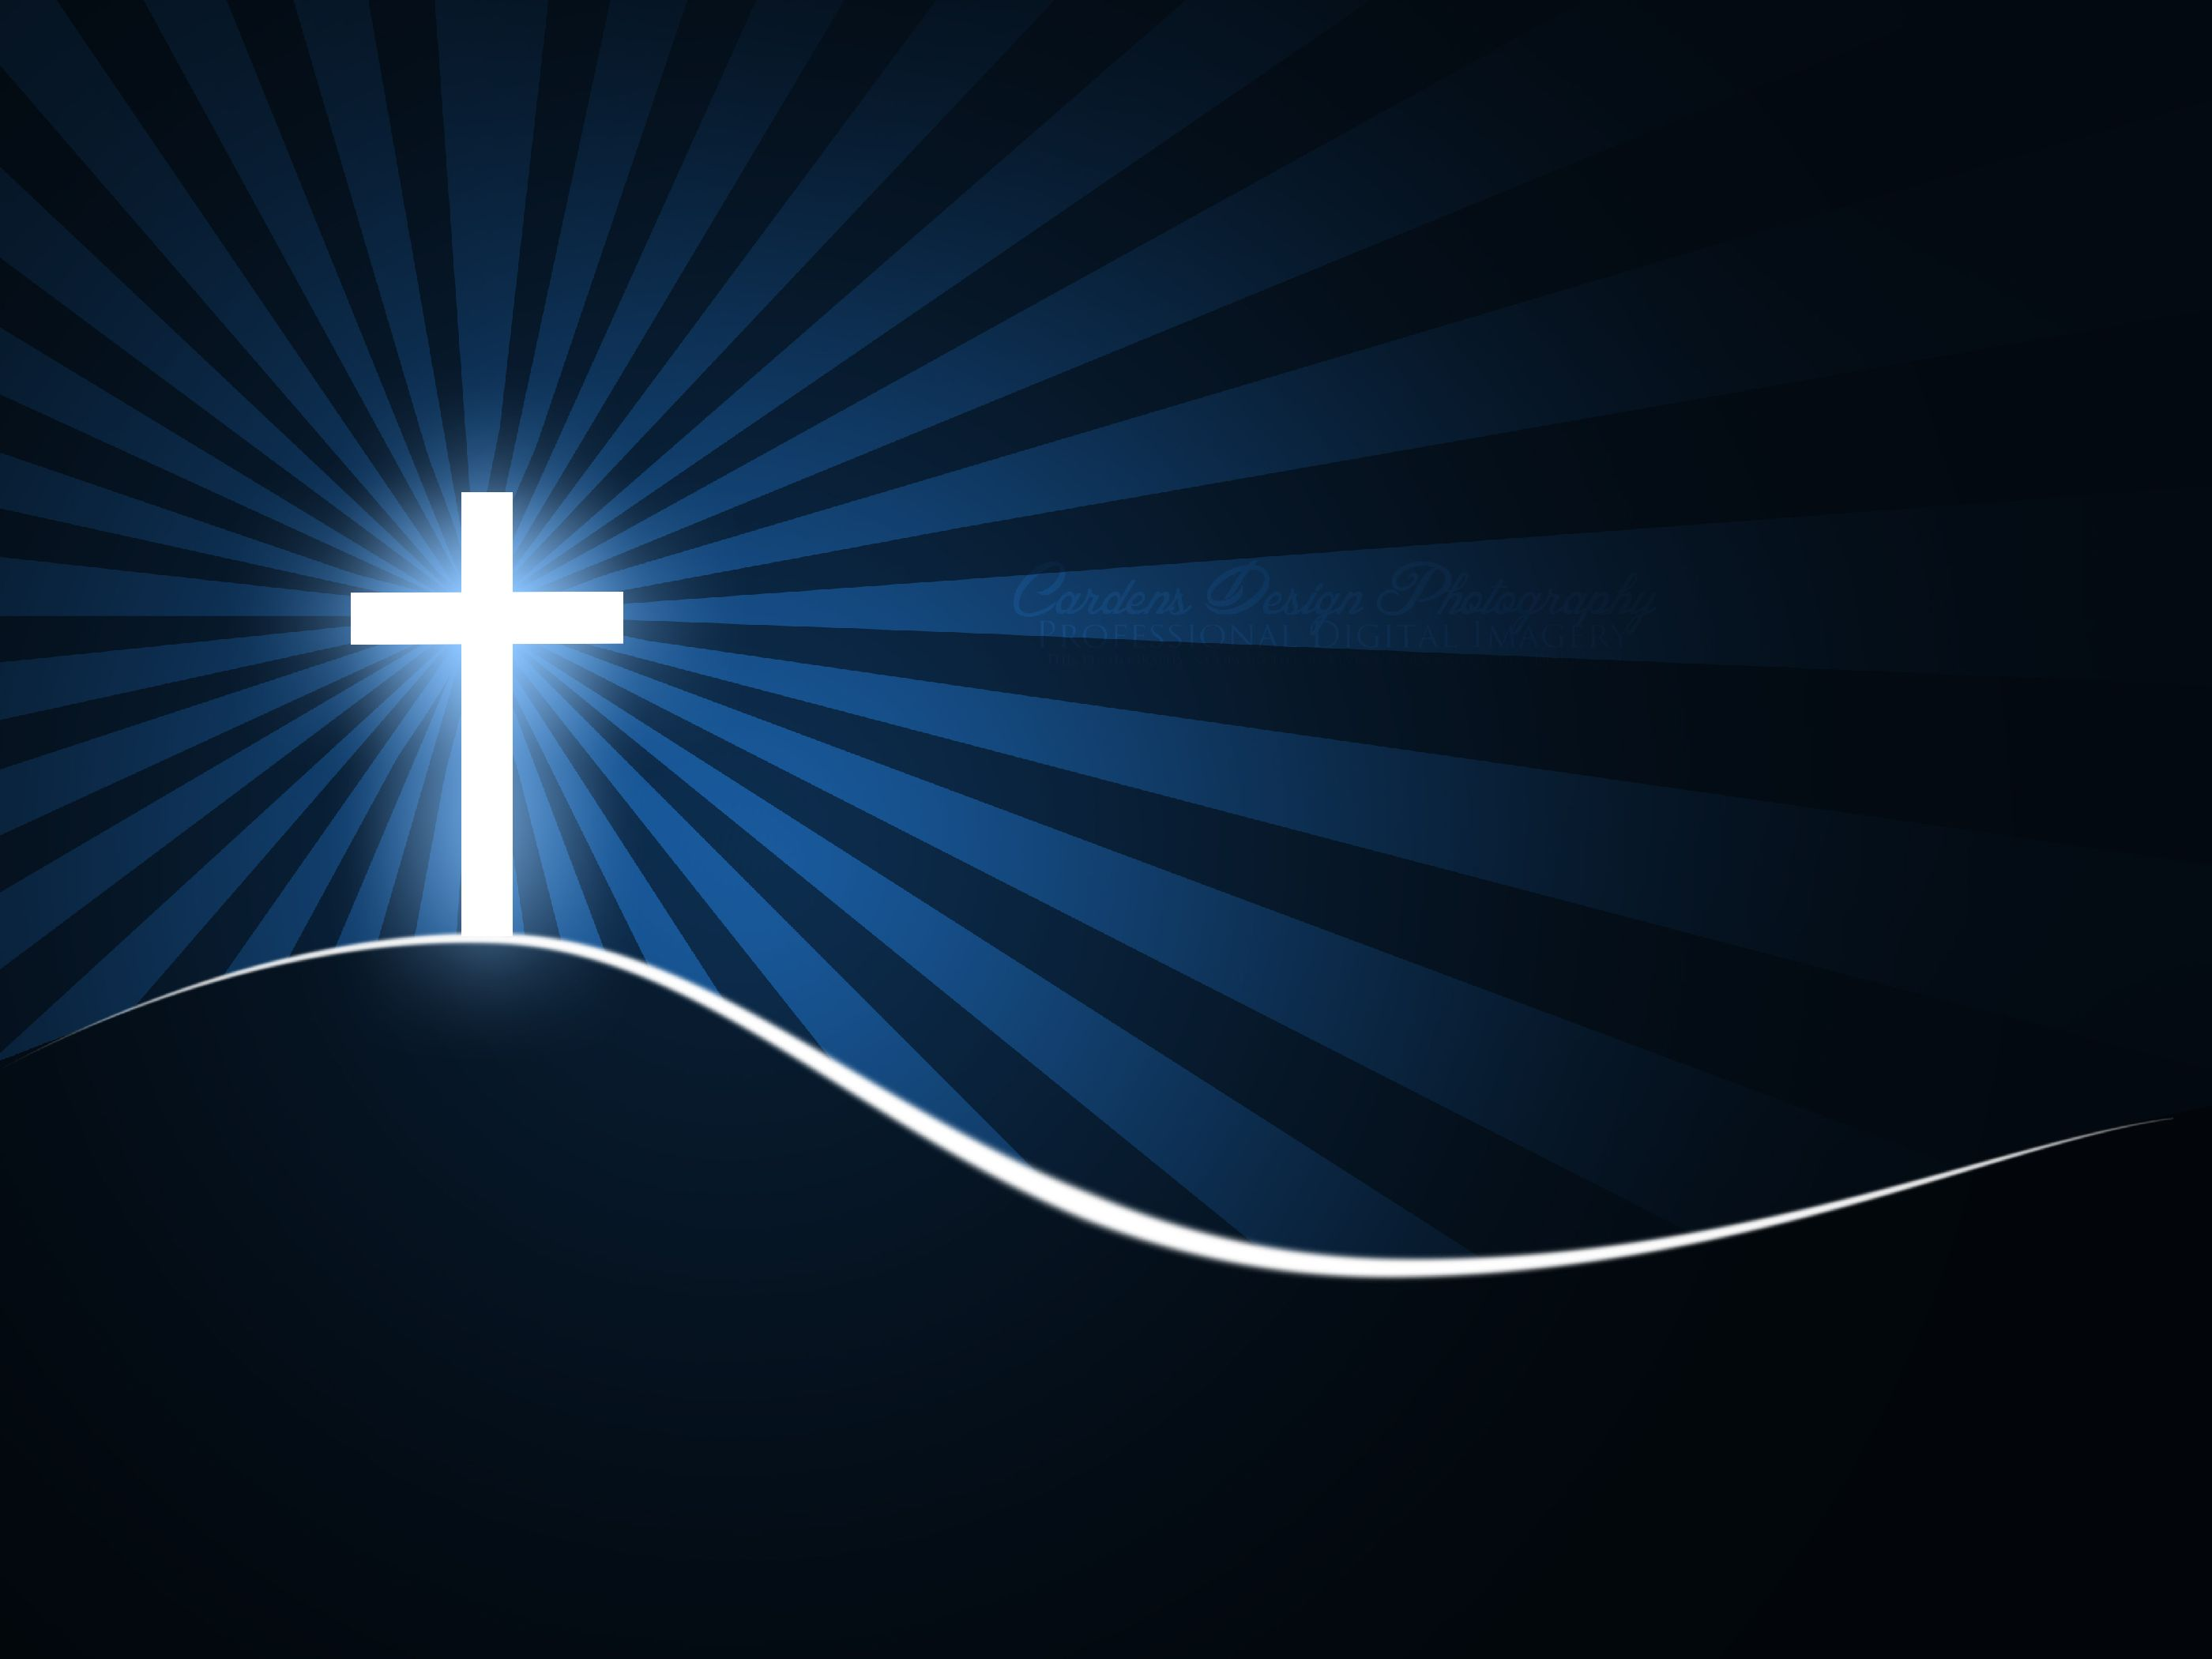 Neon Christian Wallpapers Top Free Neon Christian